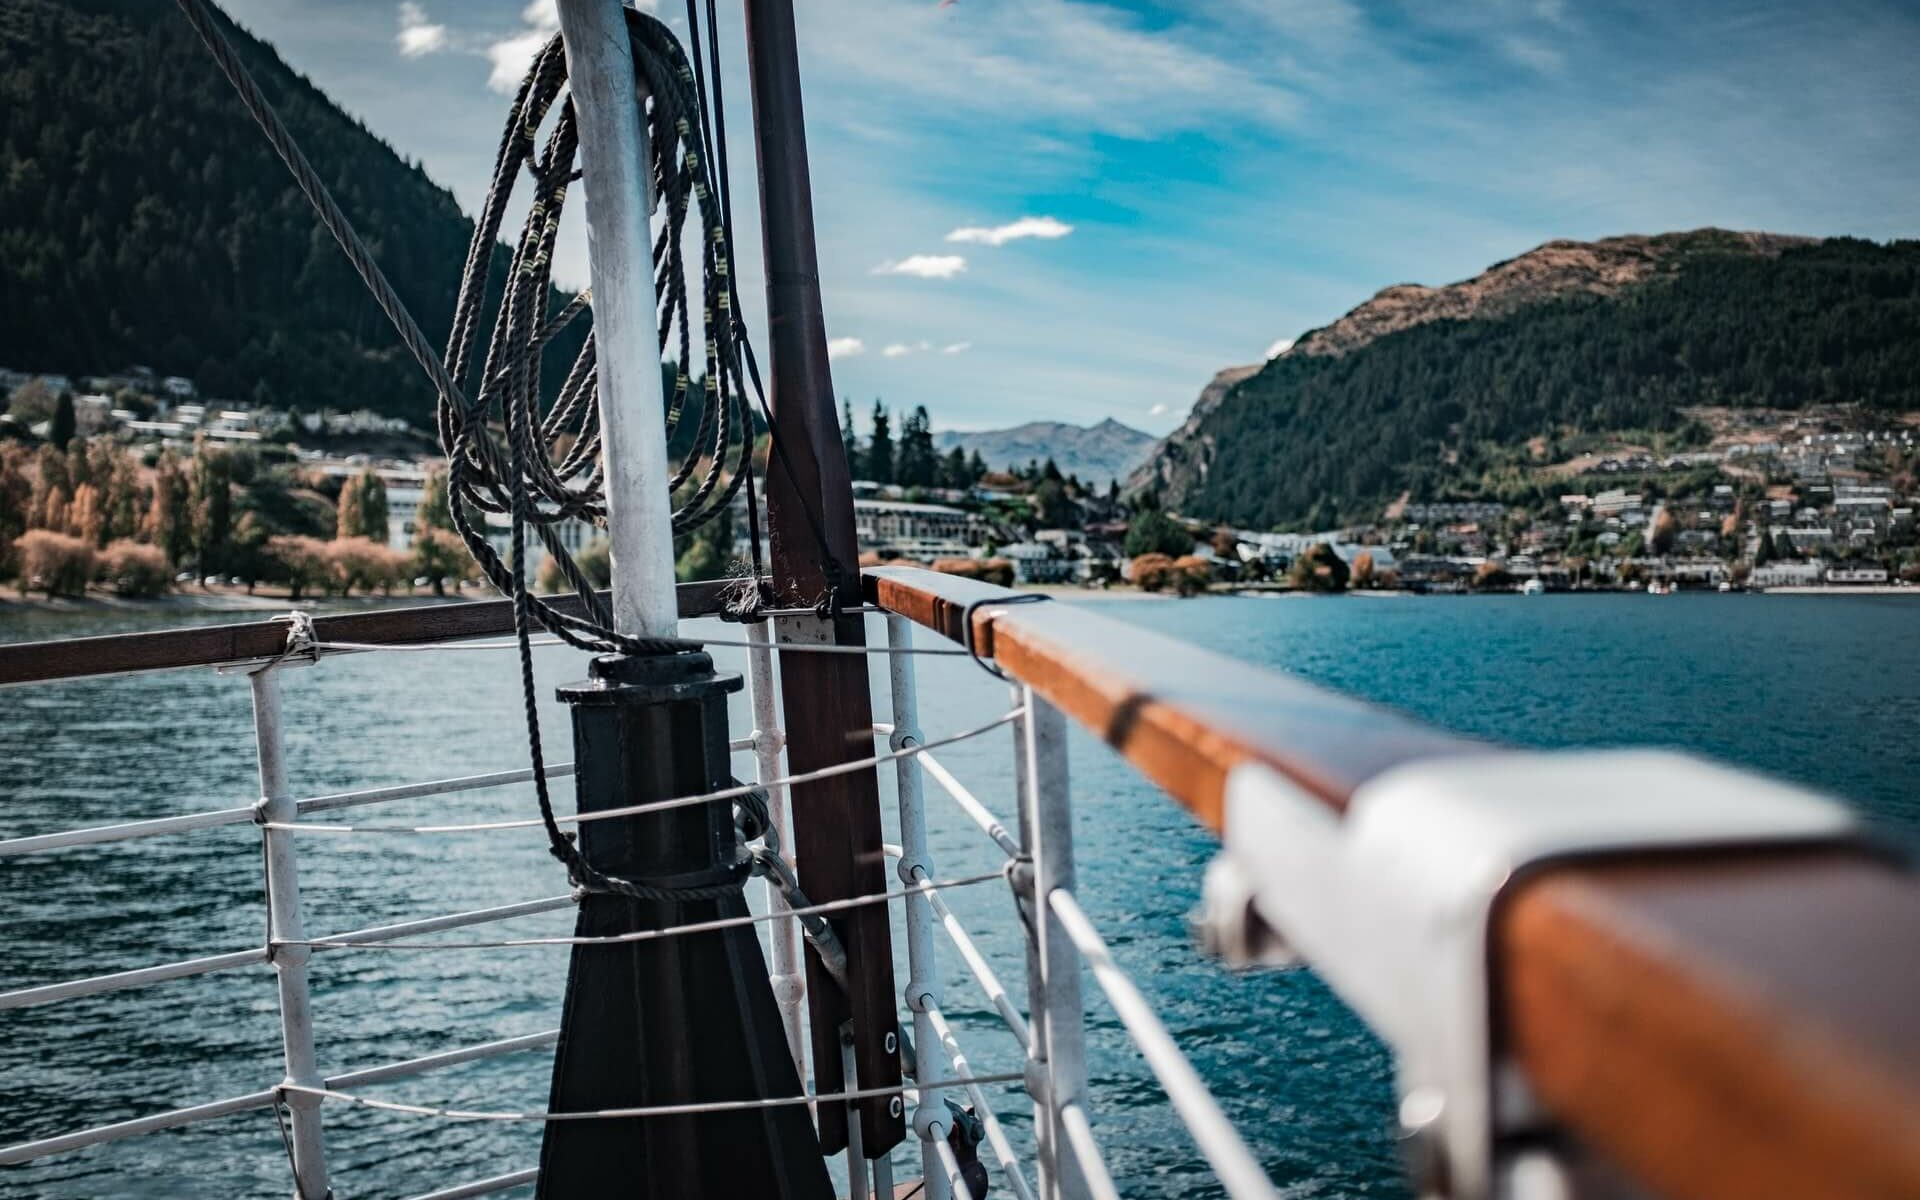 Wooden railings on the bow of a boat looking toward land